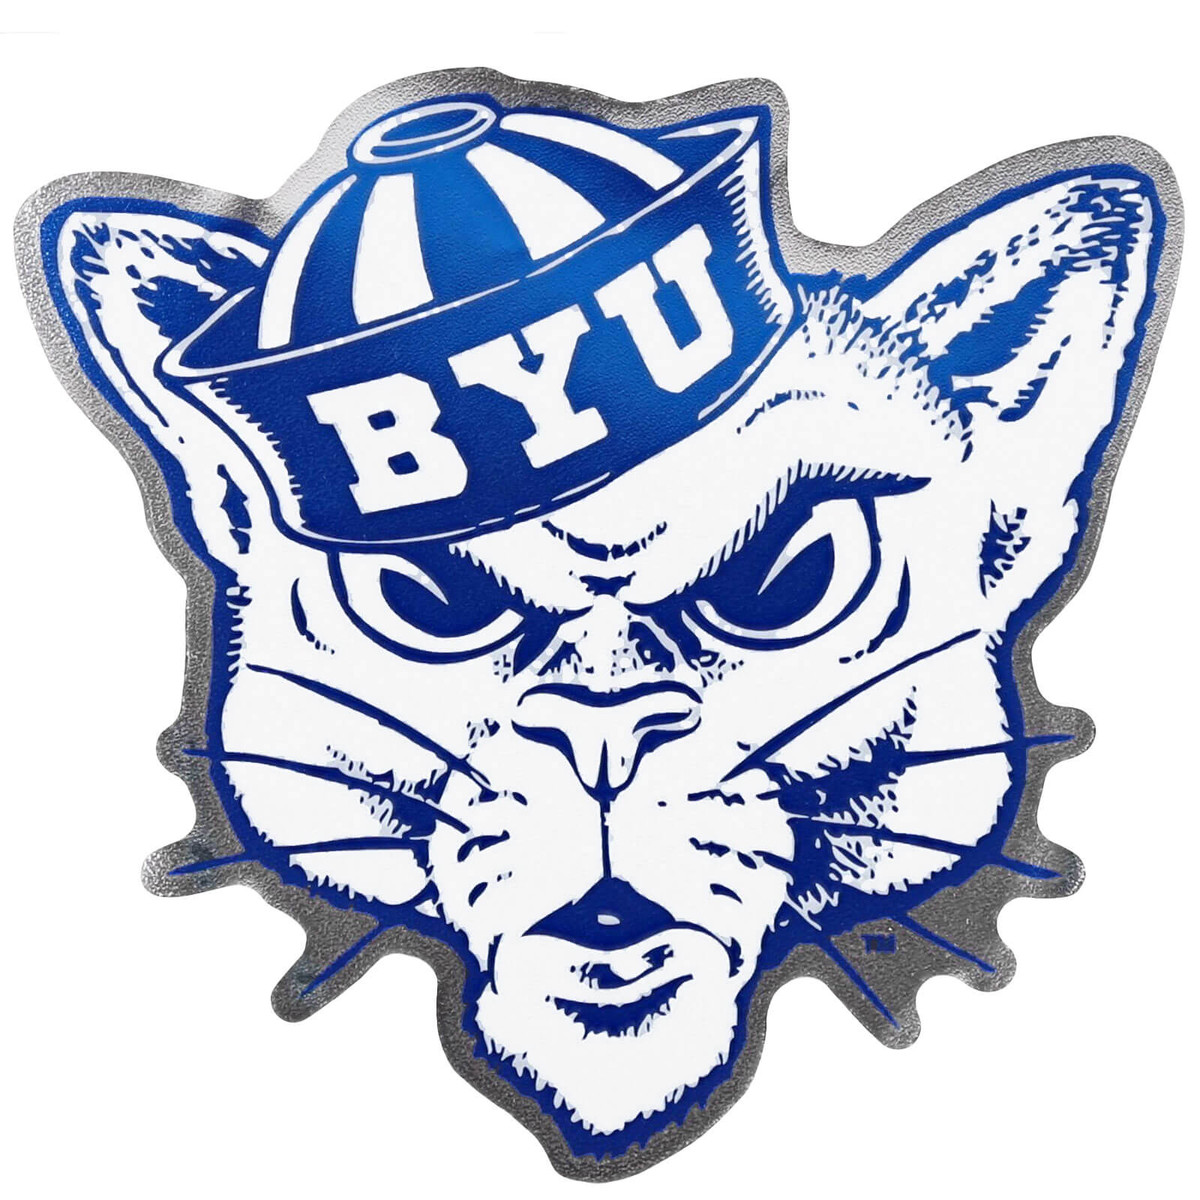 Sailor hat cougar byu decal 6 x 5